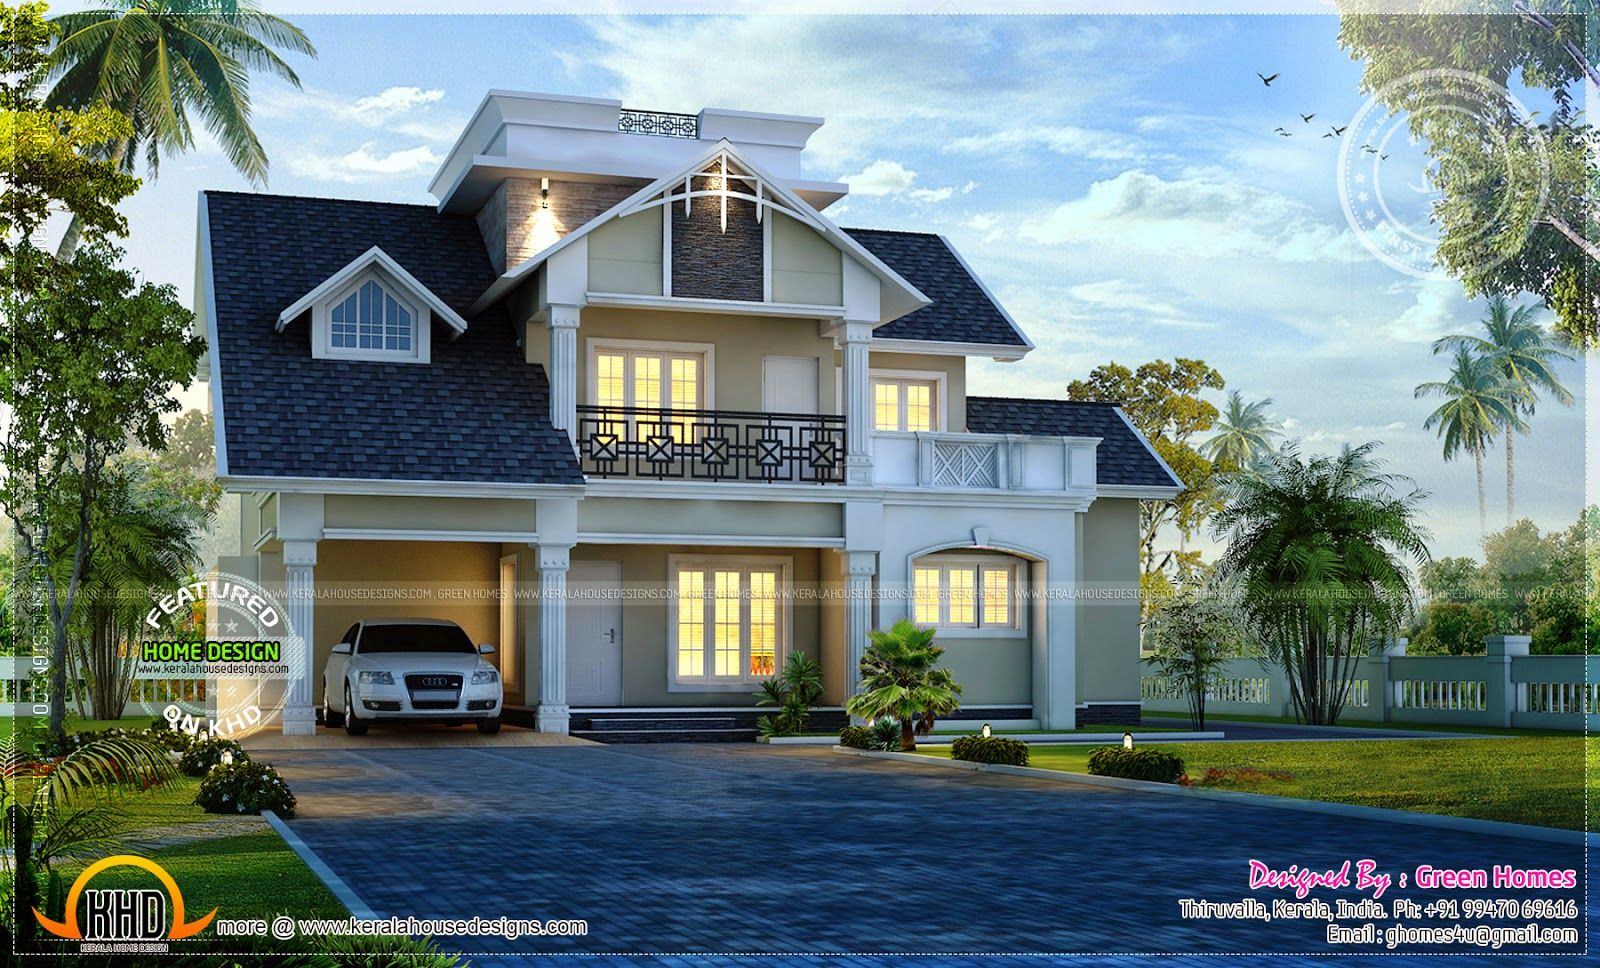 Awesome Modern House Exterior Kerala Home Design And Floor Plans Square Meter February Home